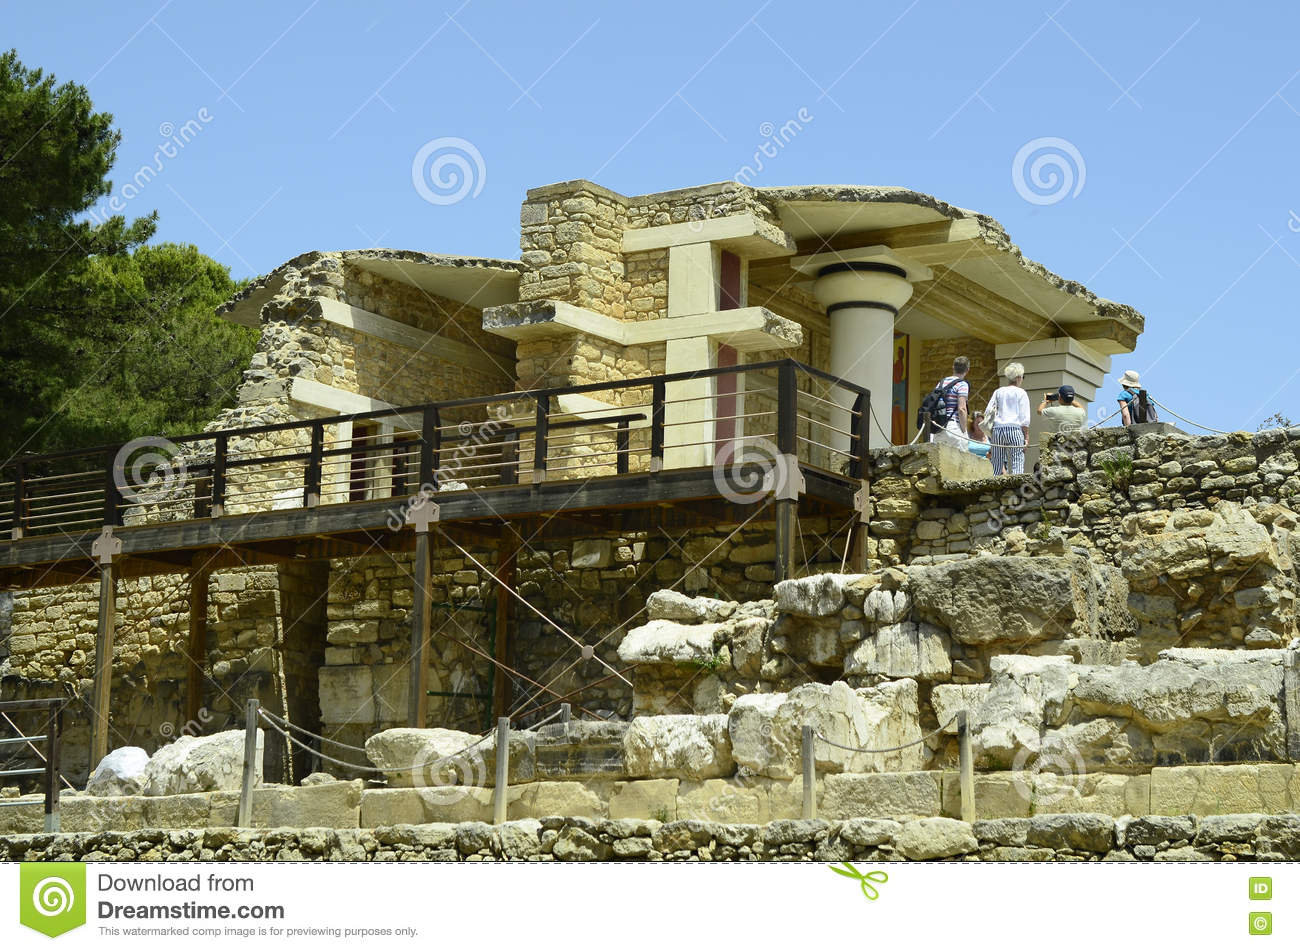 Knossos Palace in Crete. Greece, Crete: Attractions 24